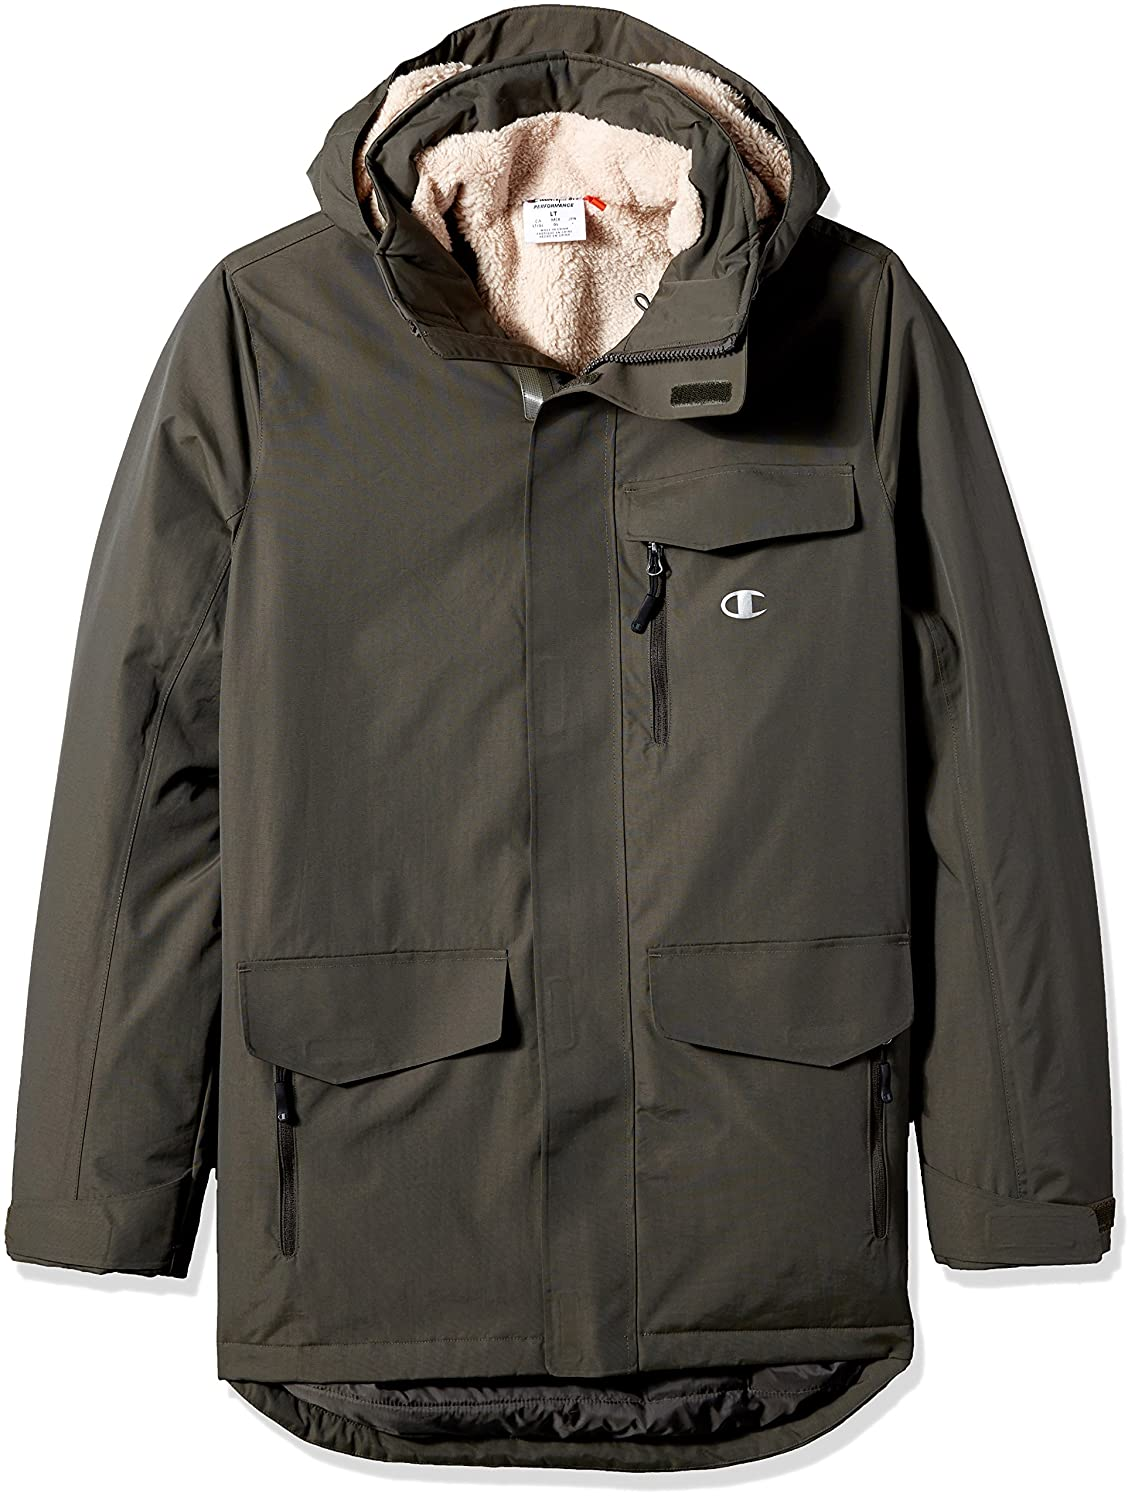 Champion Men's High Performance Jacket with Sherpa Lining - Tall Sizes Champion Mens Outerwear CH4006PPT